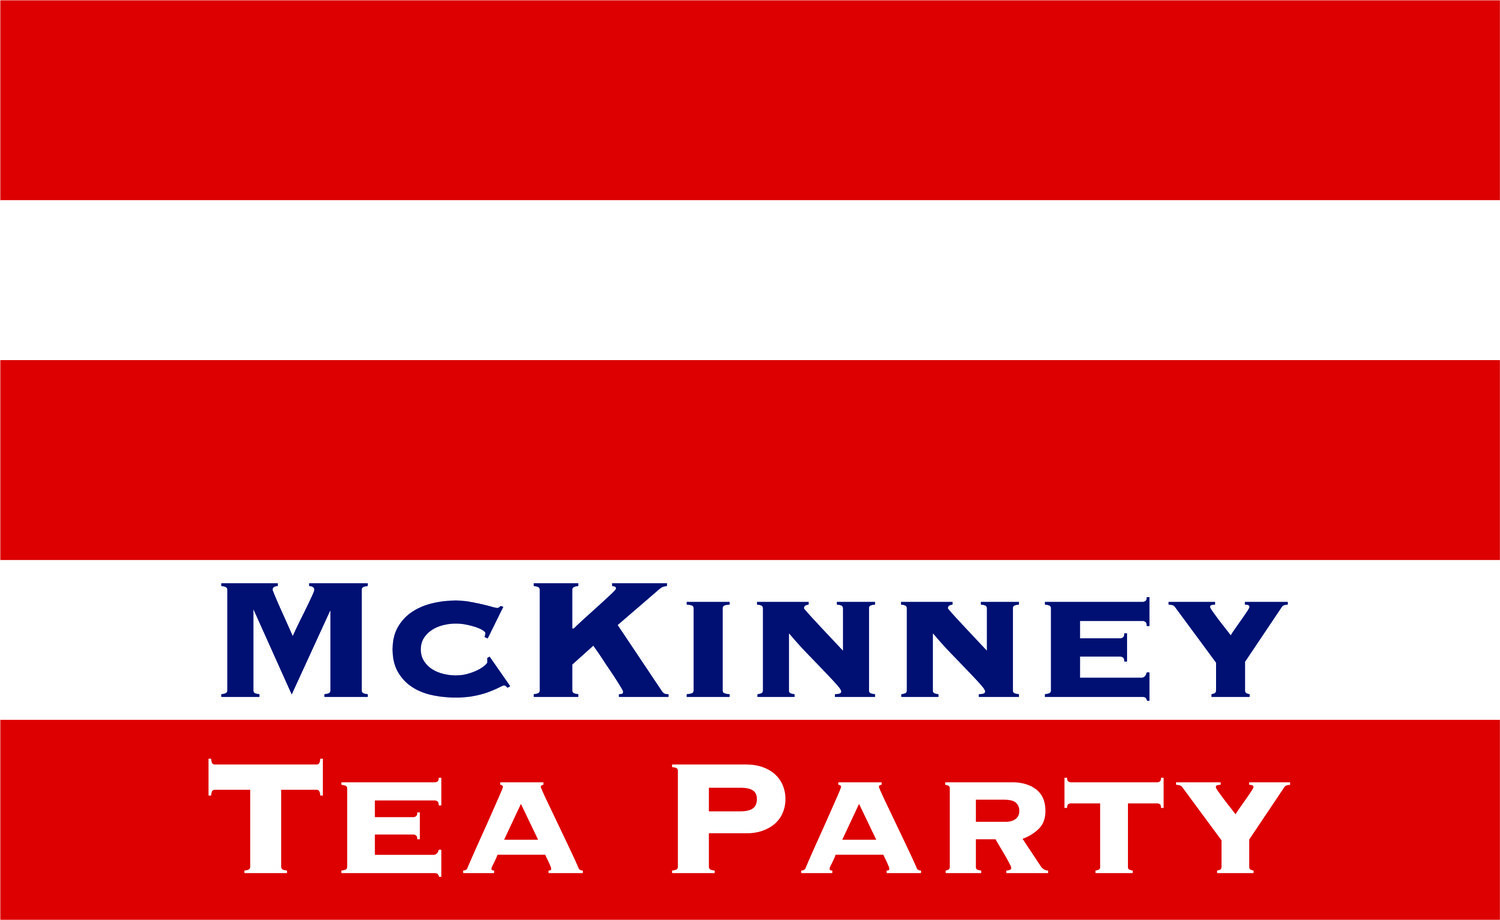 McKinney Tea Party